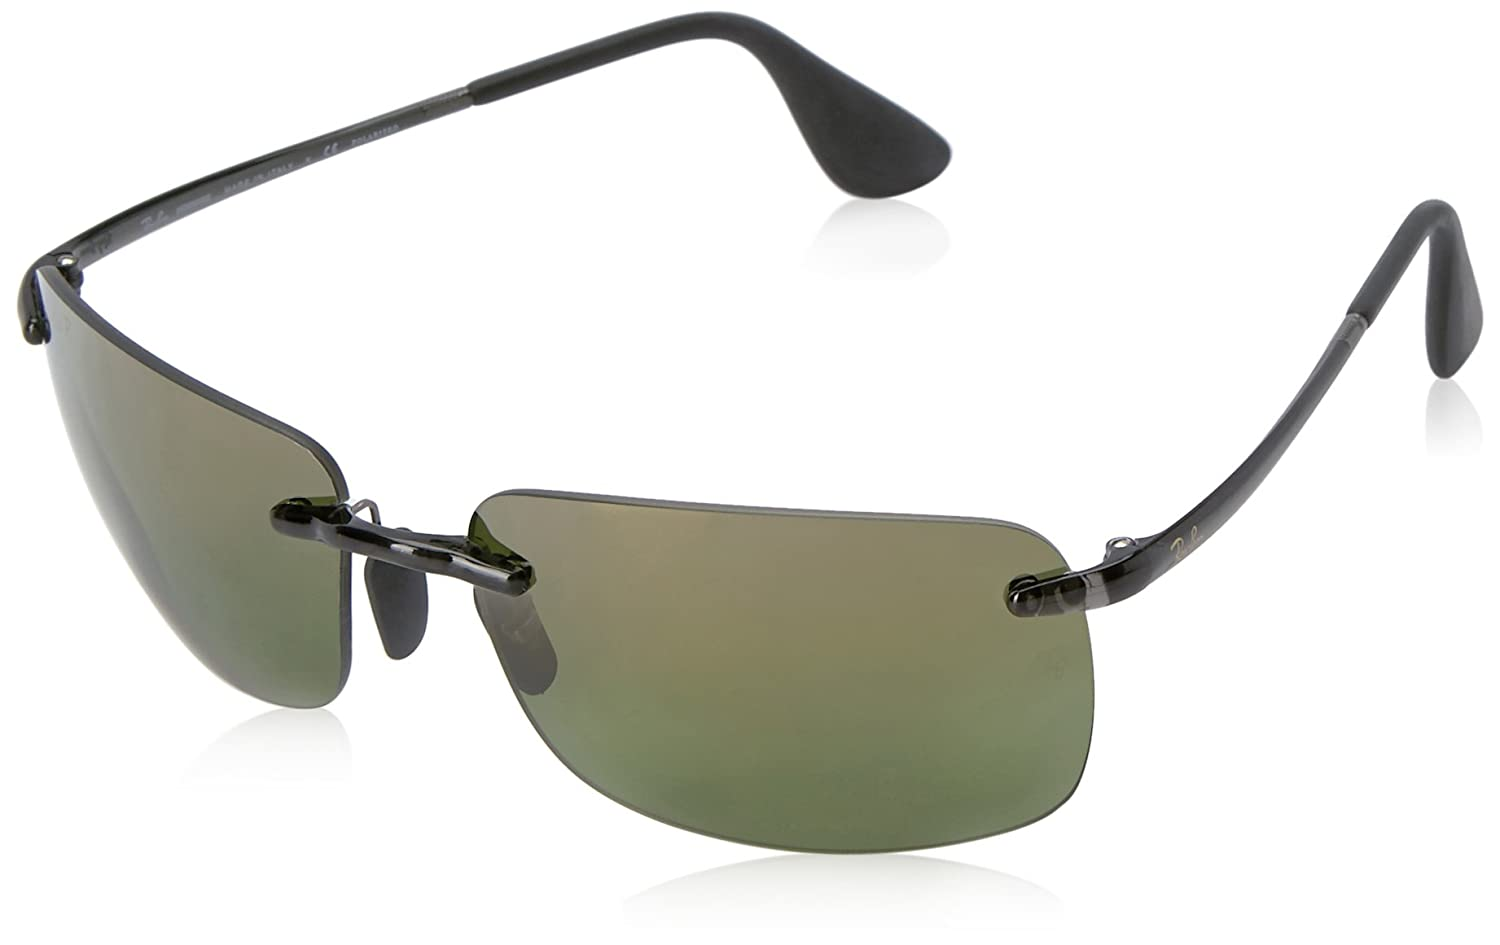 13330a25c81 Ray-Ban Rectangle Rimless Sunglasses in Grey Green Polarised Mirror ...